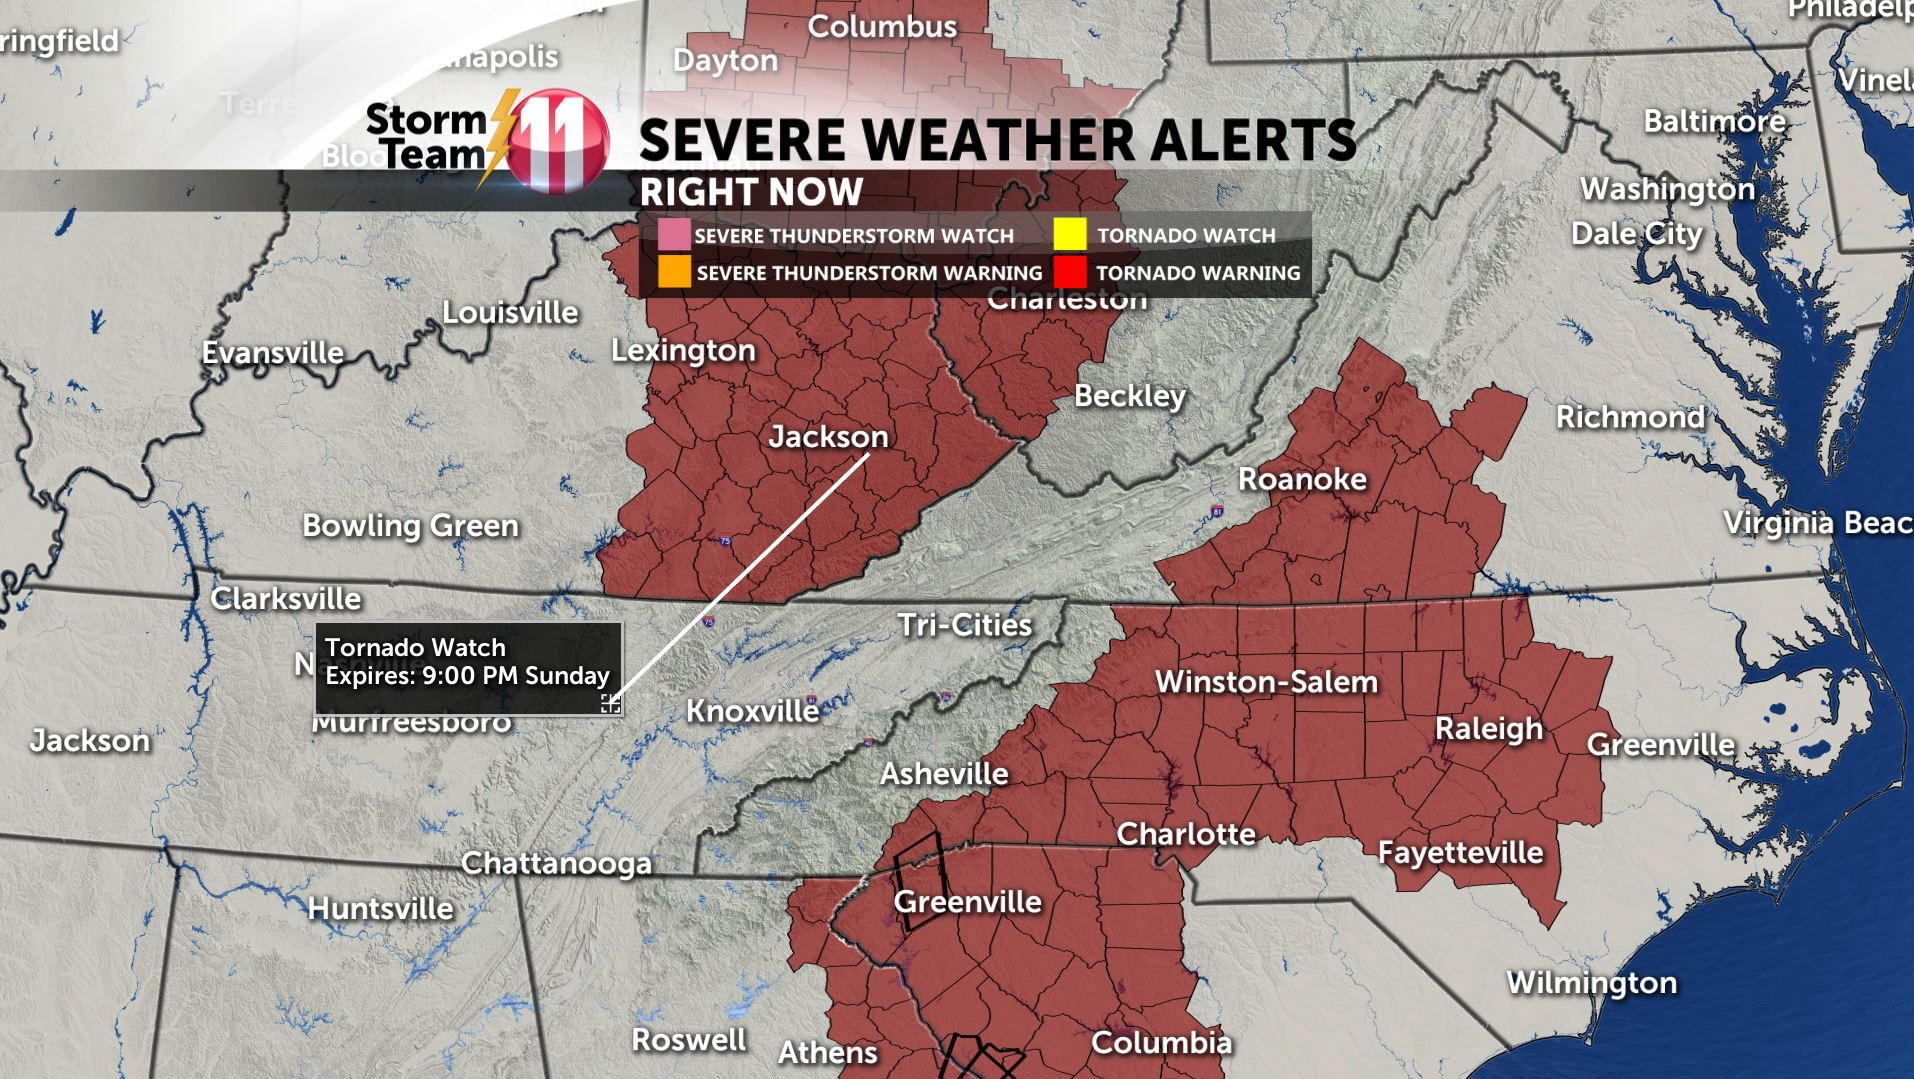 STORM TEAM 11: Severe thunderstorm watch in effect for the Tri-Cities